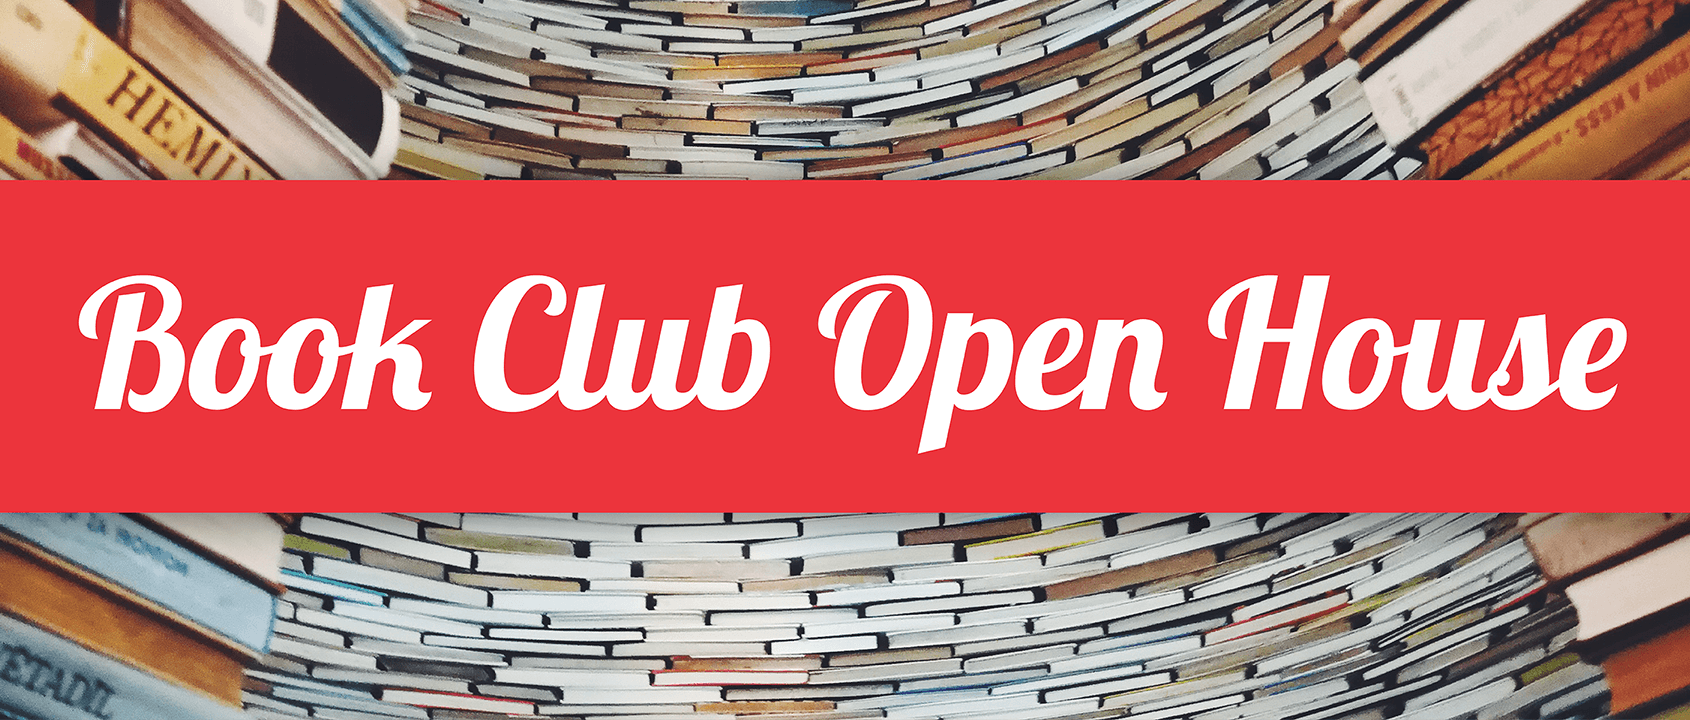 Book Club Open House Event